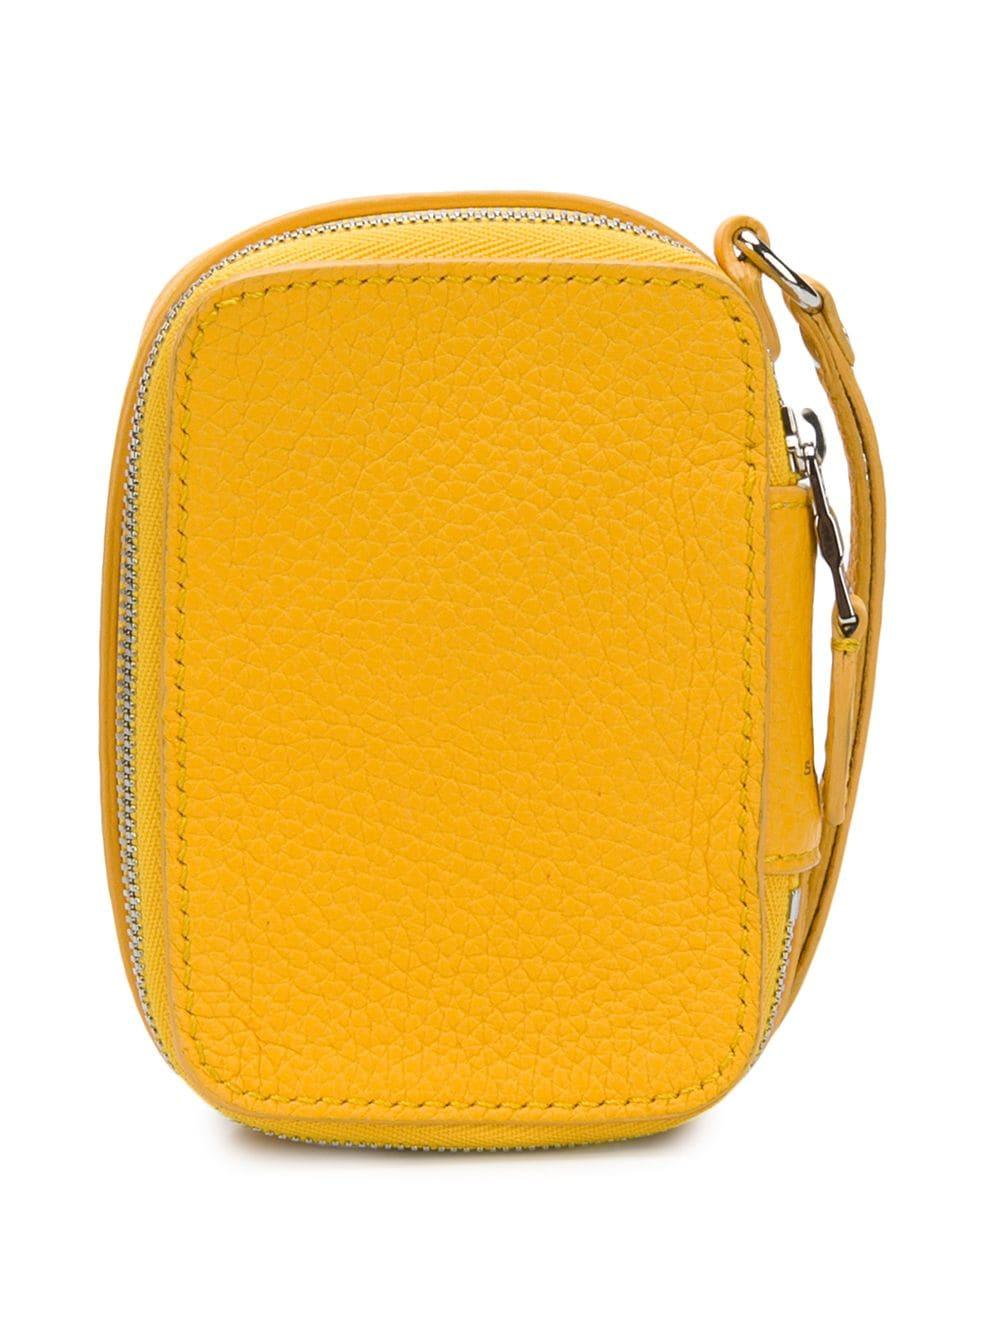 7208c27ff16c Lyst - Sonia Rykiel Le Pave Keyring Purse in Yellow